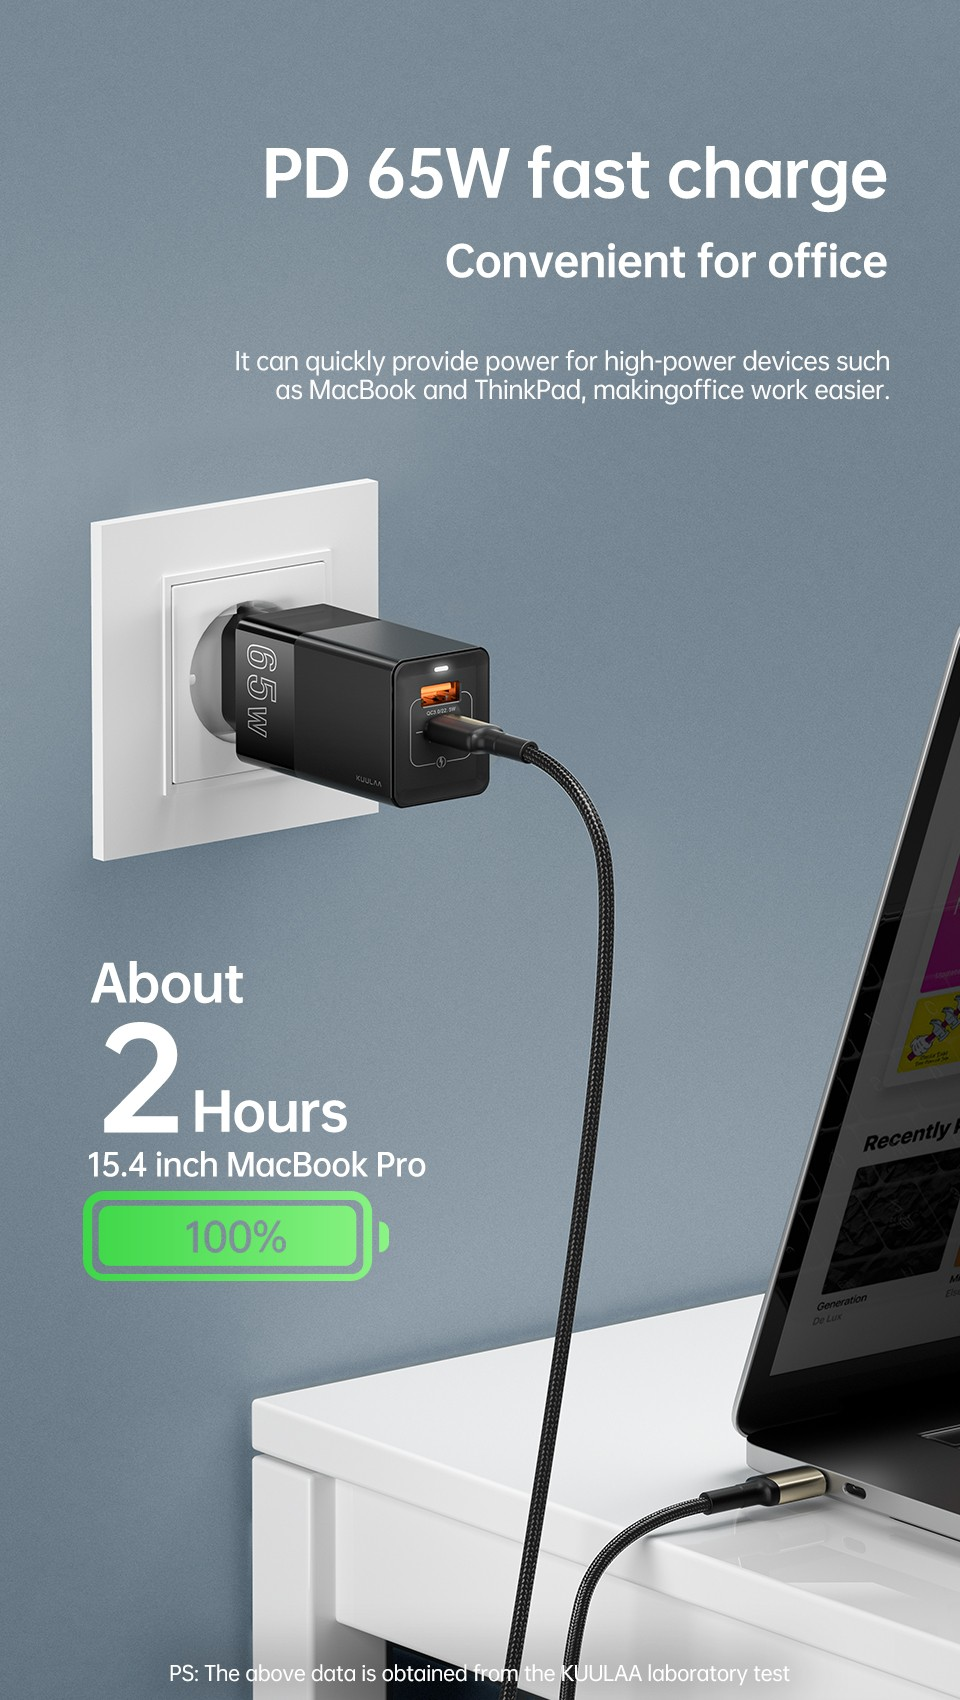 Kuulaa KL-CD14 65W Charger PD 65W fast charge